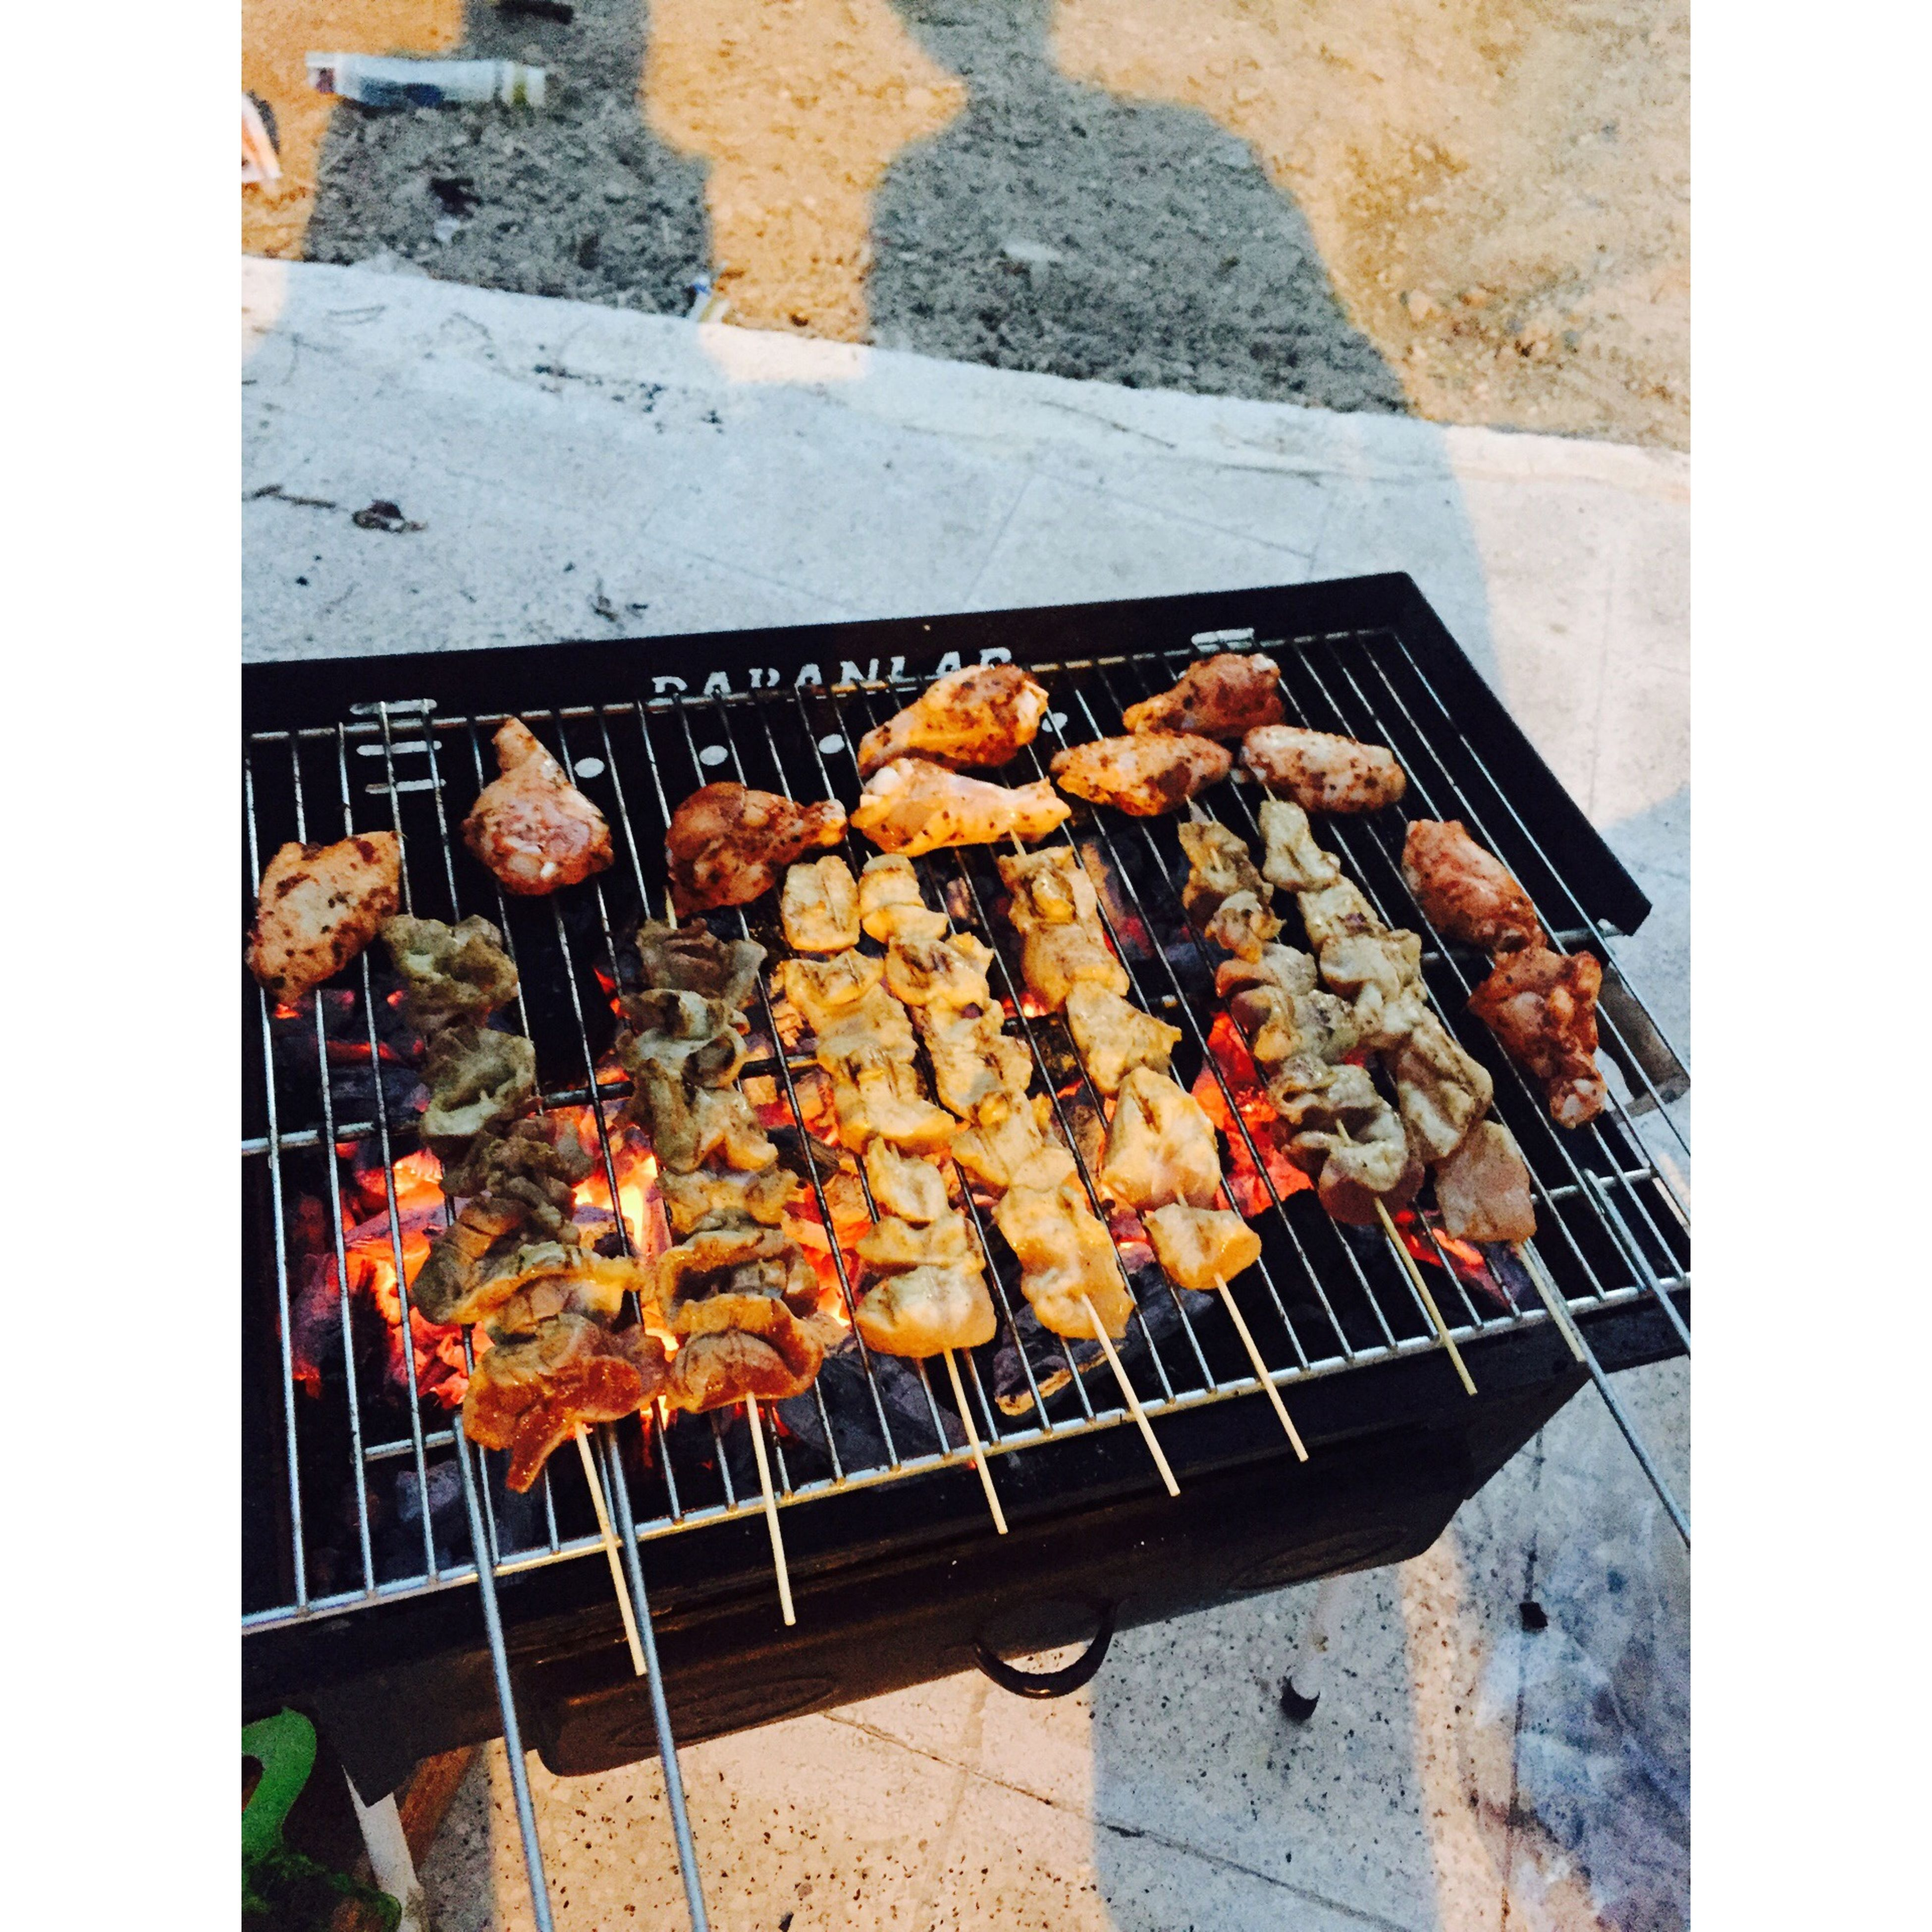 food, food and drink, barbecue grill, freshness, meat, barbecue, grilled, preparation, cooking, healthy eating, heat - temperature, preparing food, grill, roasted, transfer print, high angle view, abundance, sausage, skewer, seafood